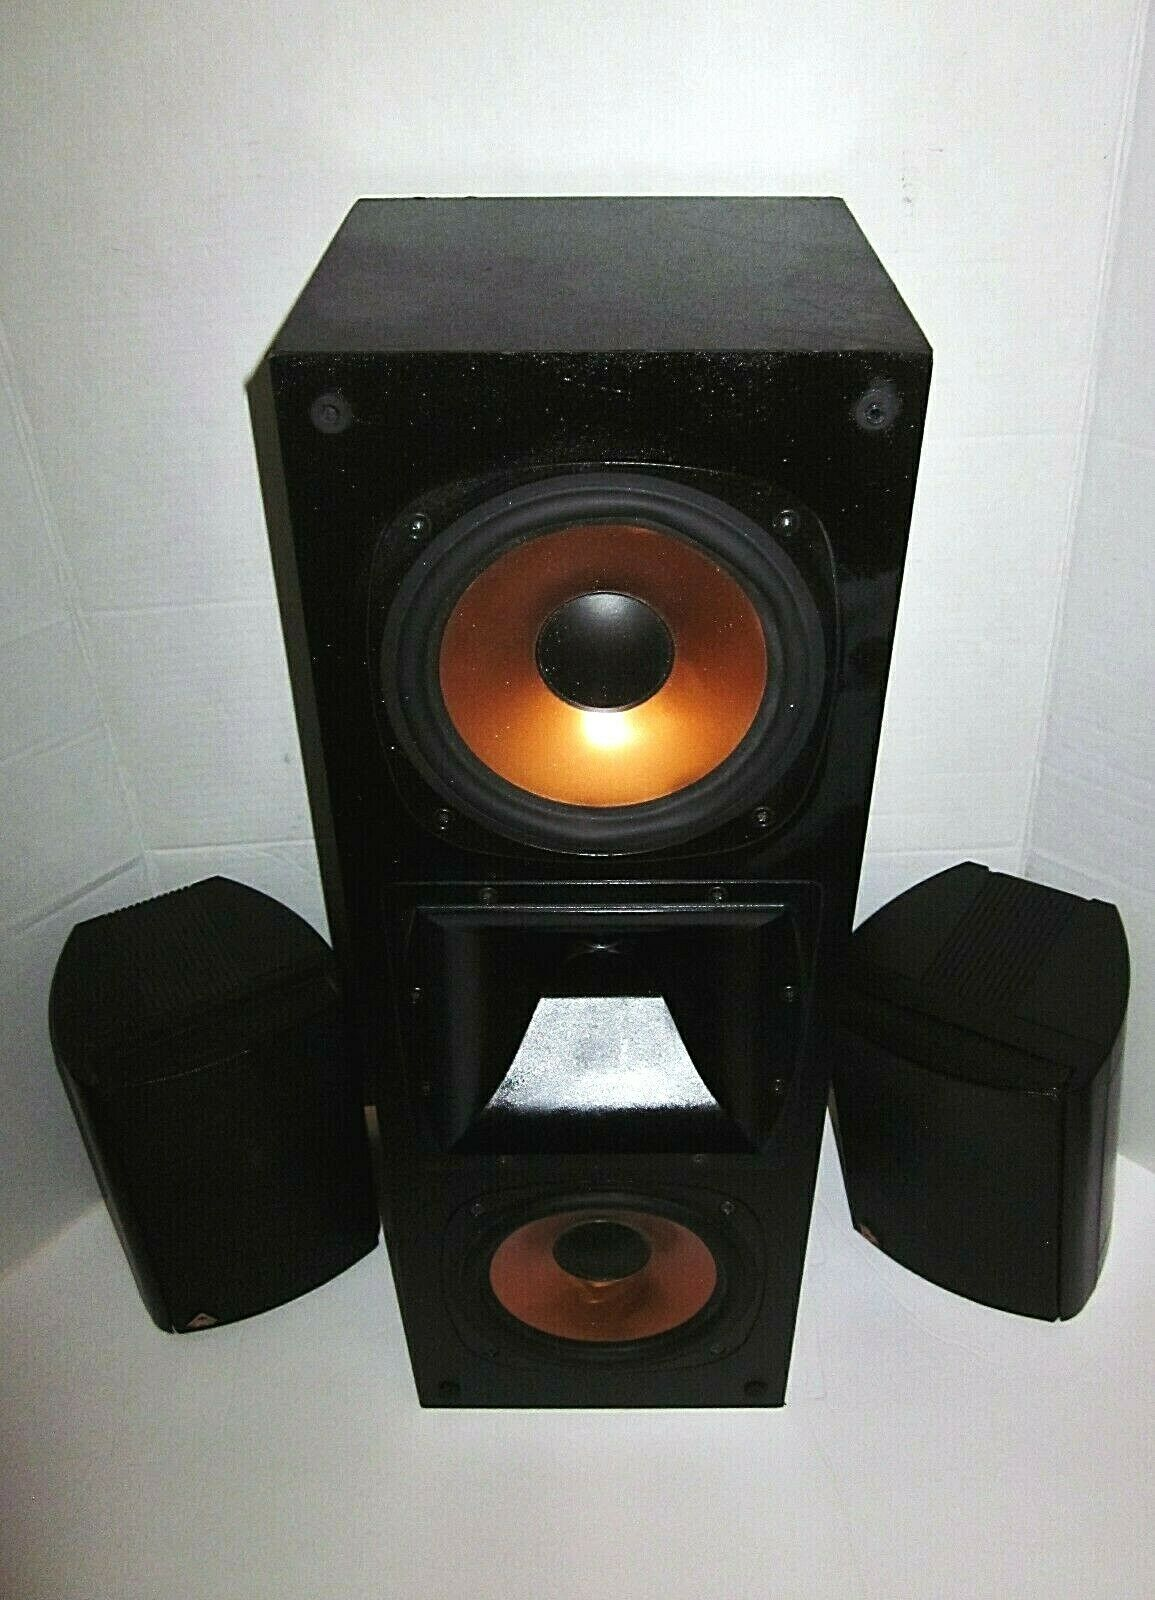 1 Klipsch RC3 II Center Speaker & 2 Klipsch Surround Sound Speakers 120104x